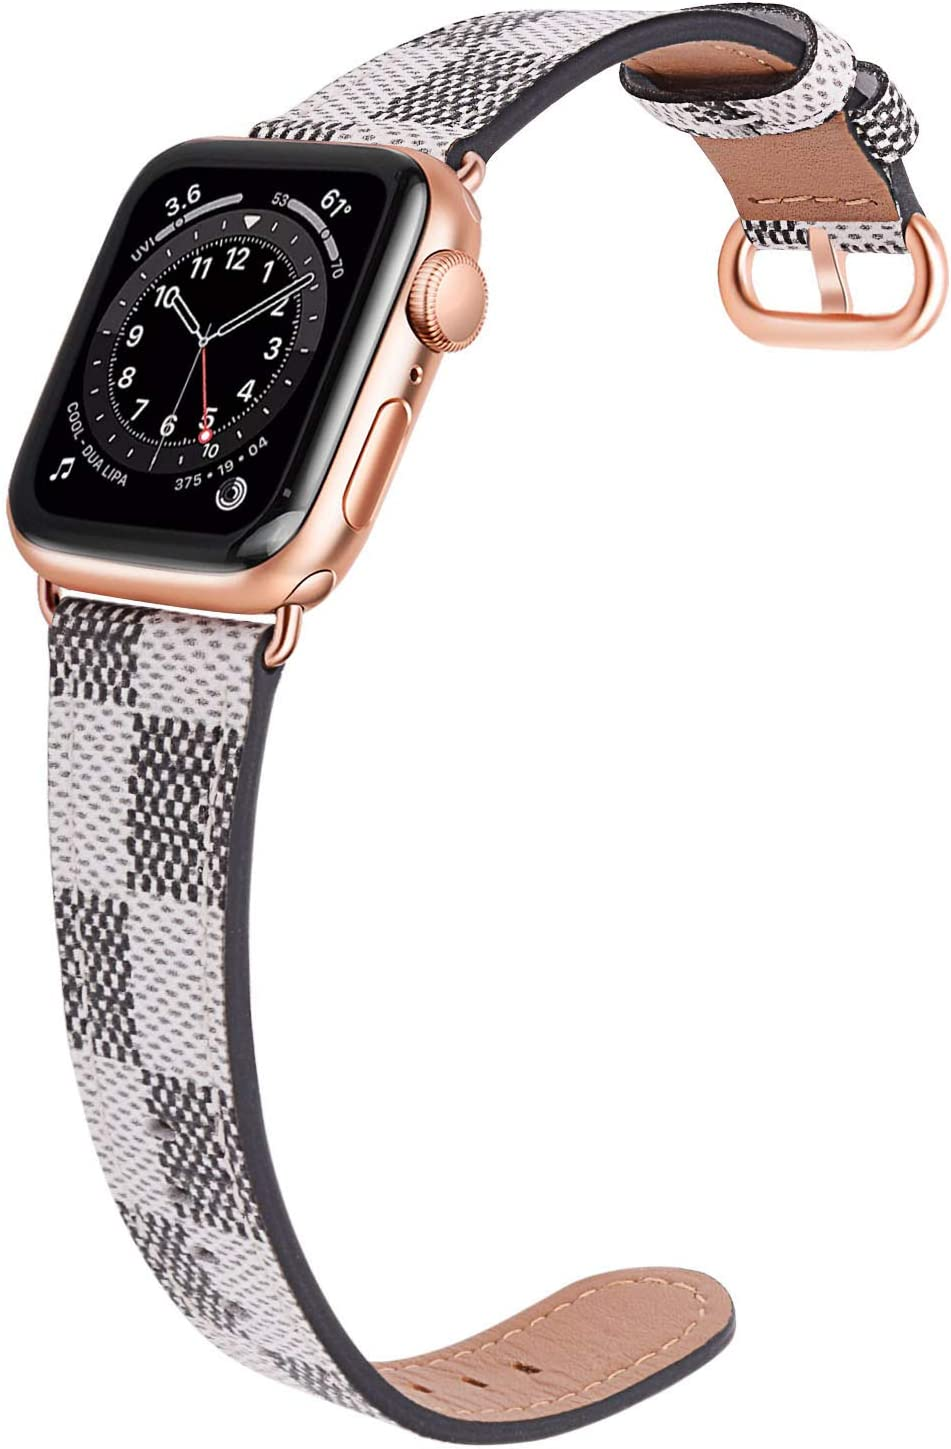 JSGJMY Leather Band Compatible with Apple Watch 38mm 40mm 42mm 44mm Women Men Strap for iWatch SE Series 6 5 4 3 2 1(White Checkered+Match SE/6/5/4/3 Rose Gold, 38mm/40mm S/M)